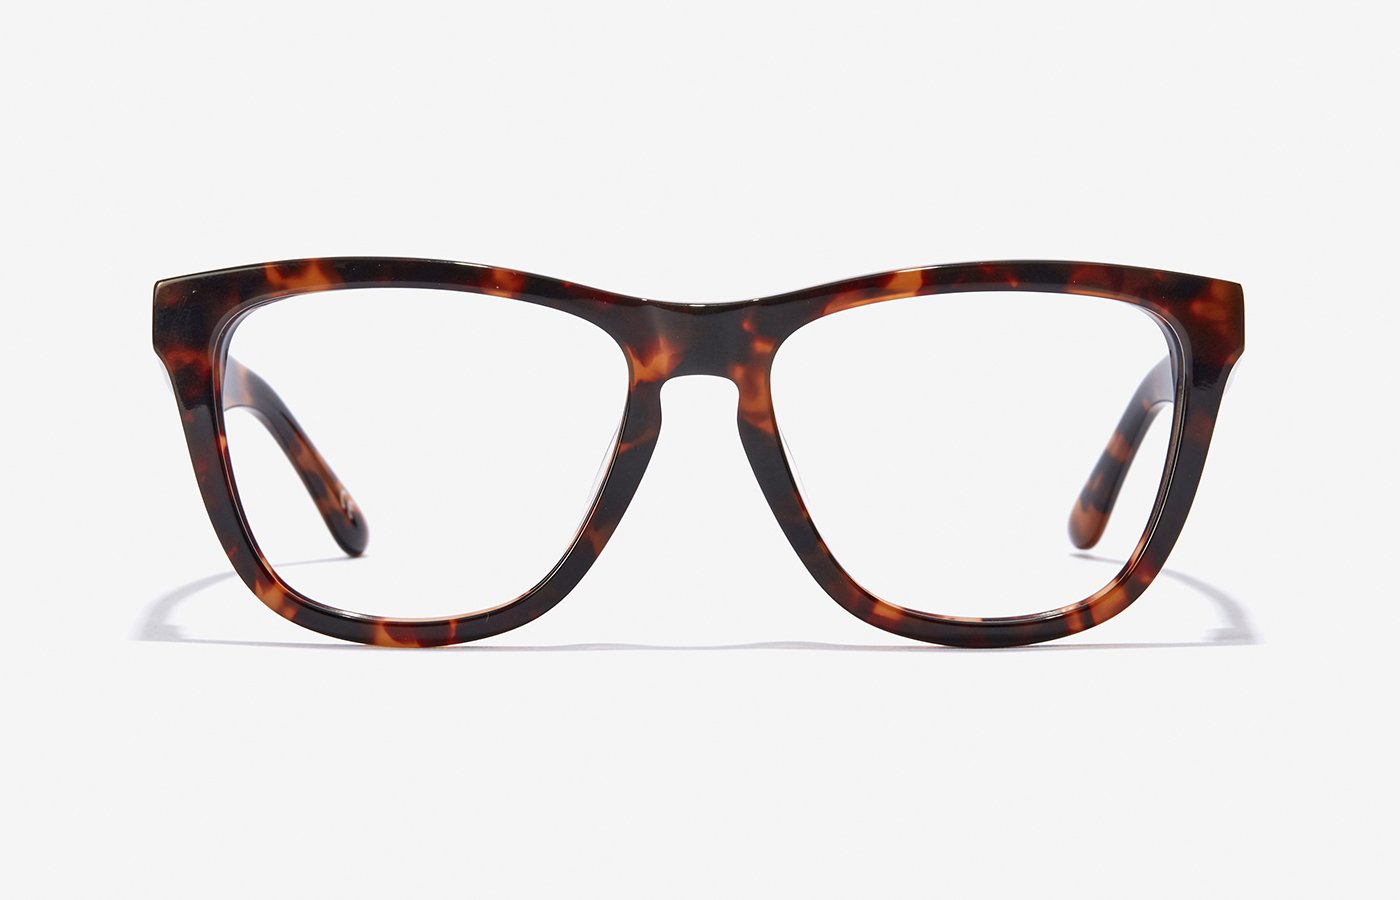 HAWKERS EYEWEAR DARK CAREY ONE RX